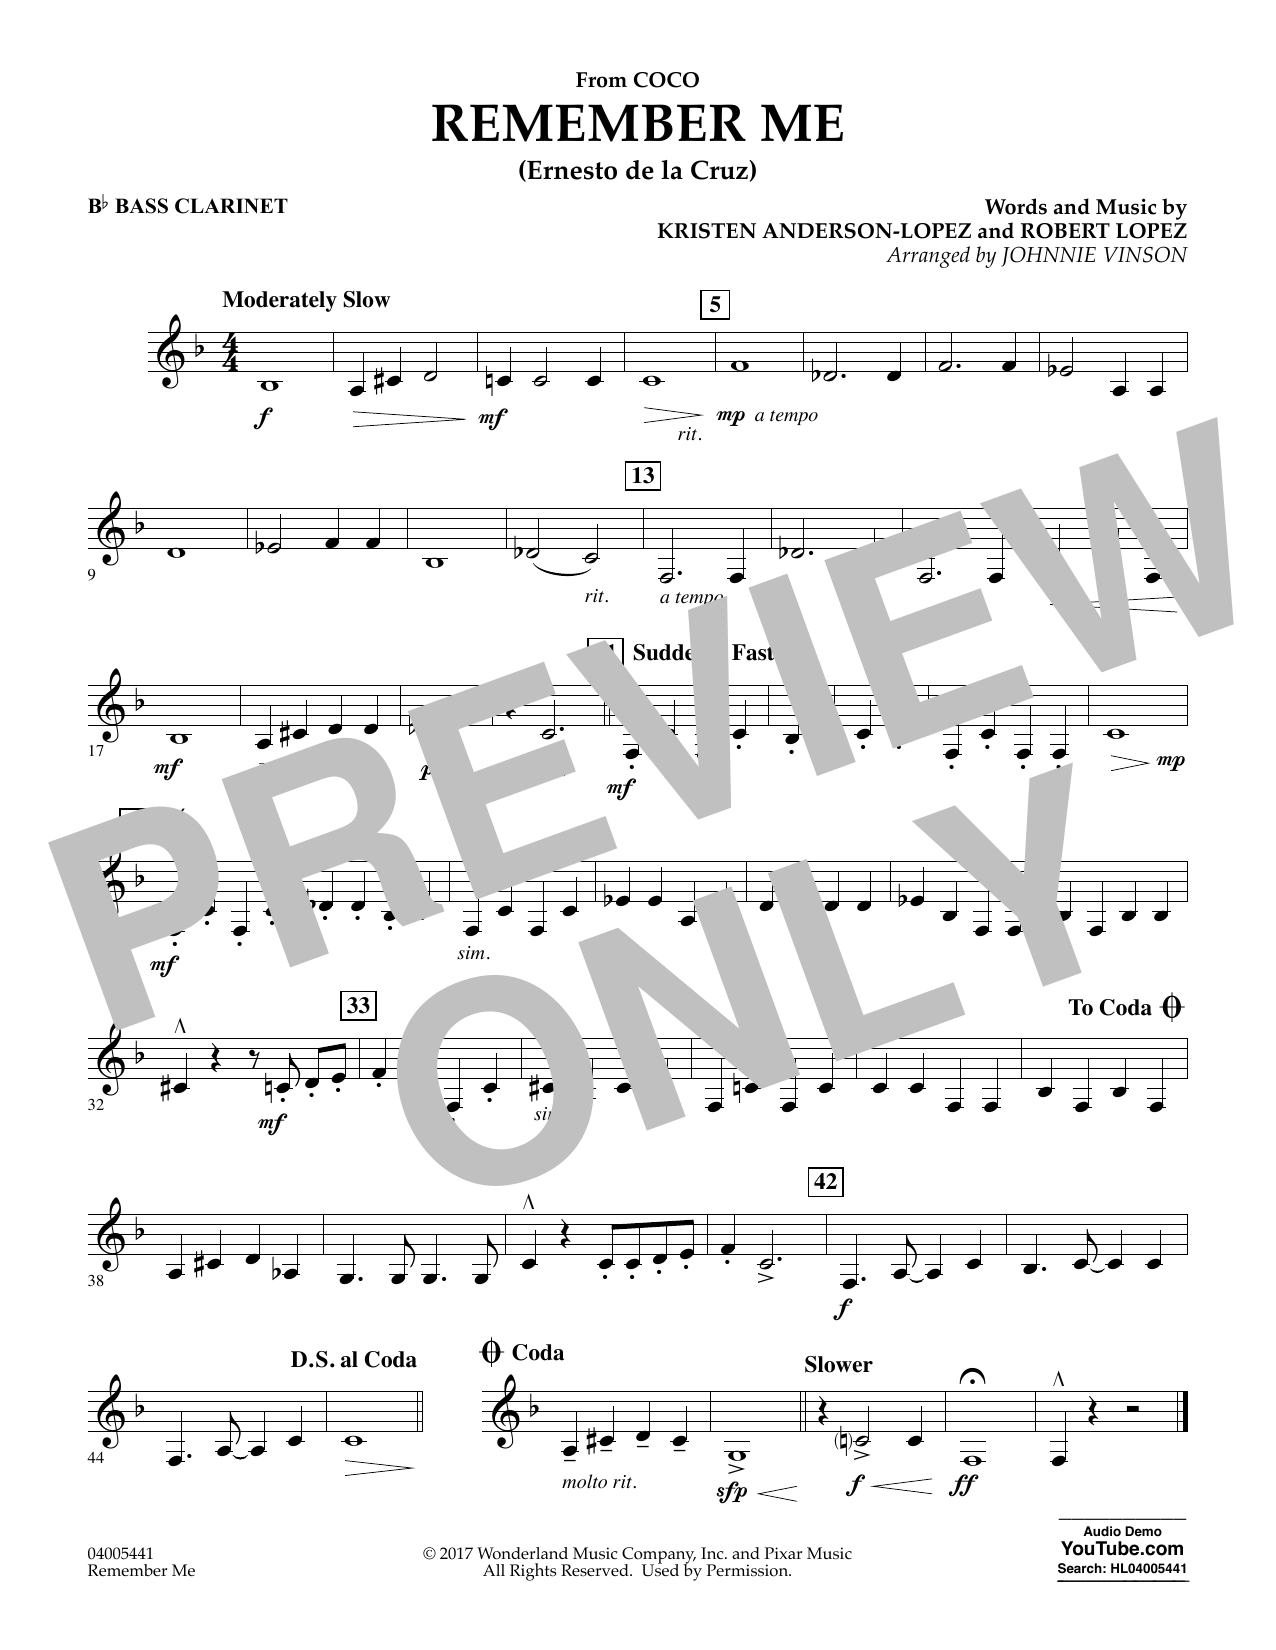 Kristen Anderson-Lopez & Robert Lopez Remember Me (from Coco) (arr. Johnnie Vinson) - Bb Bass Clarinet sheet music notes and chords. Download Printable PDF.